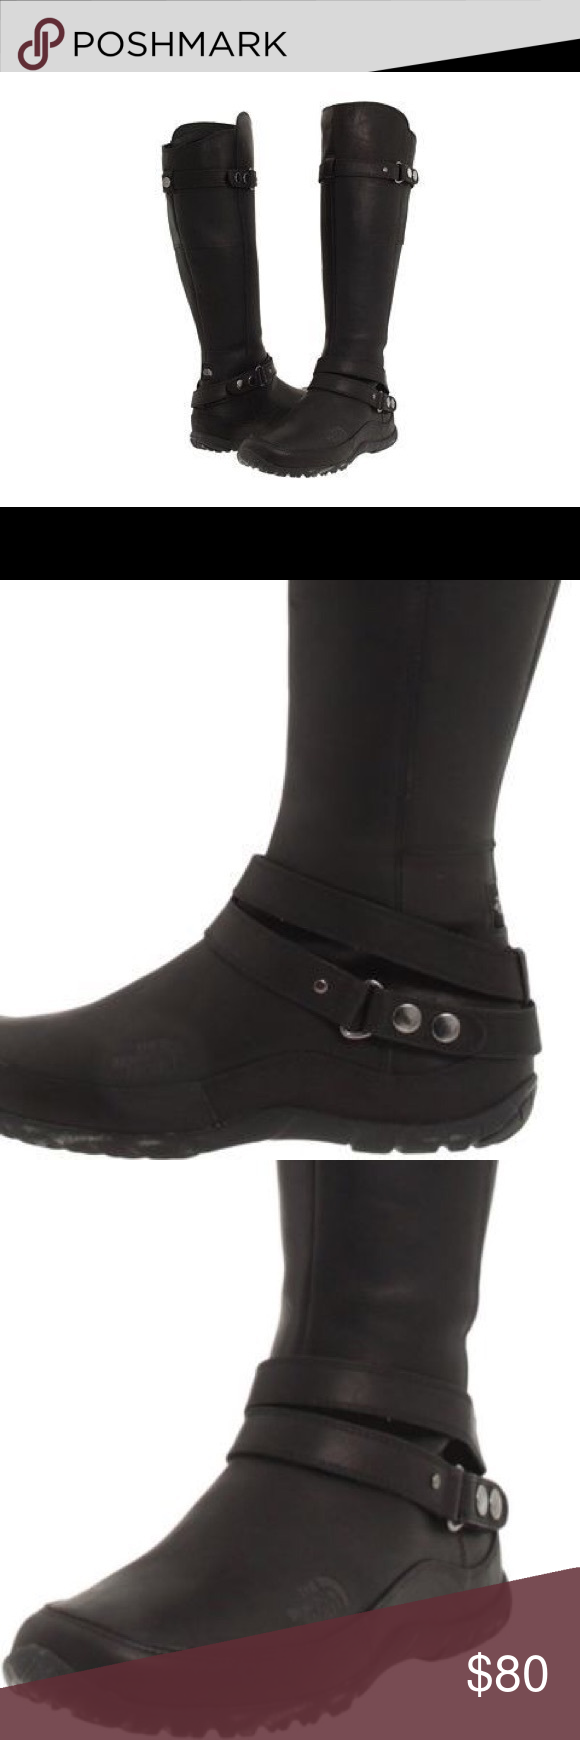 b46d7af88 North face Bryn black leather tall boots Preowned The North Face ...